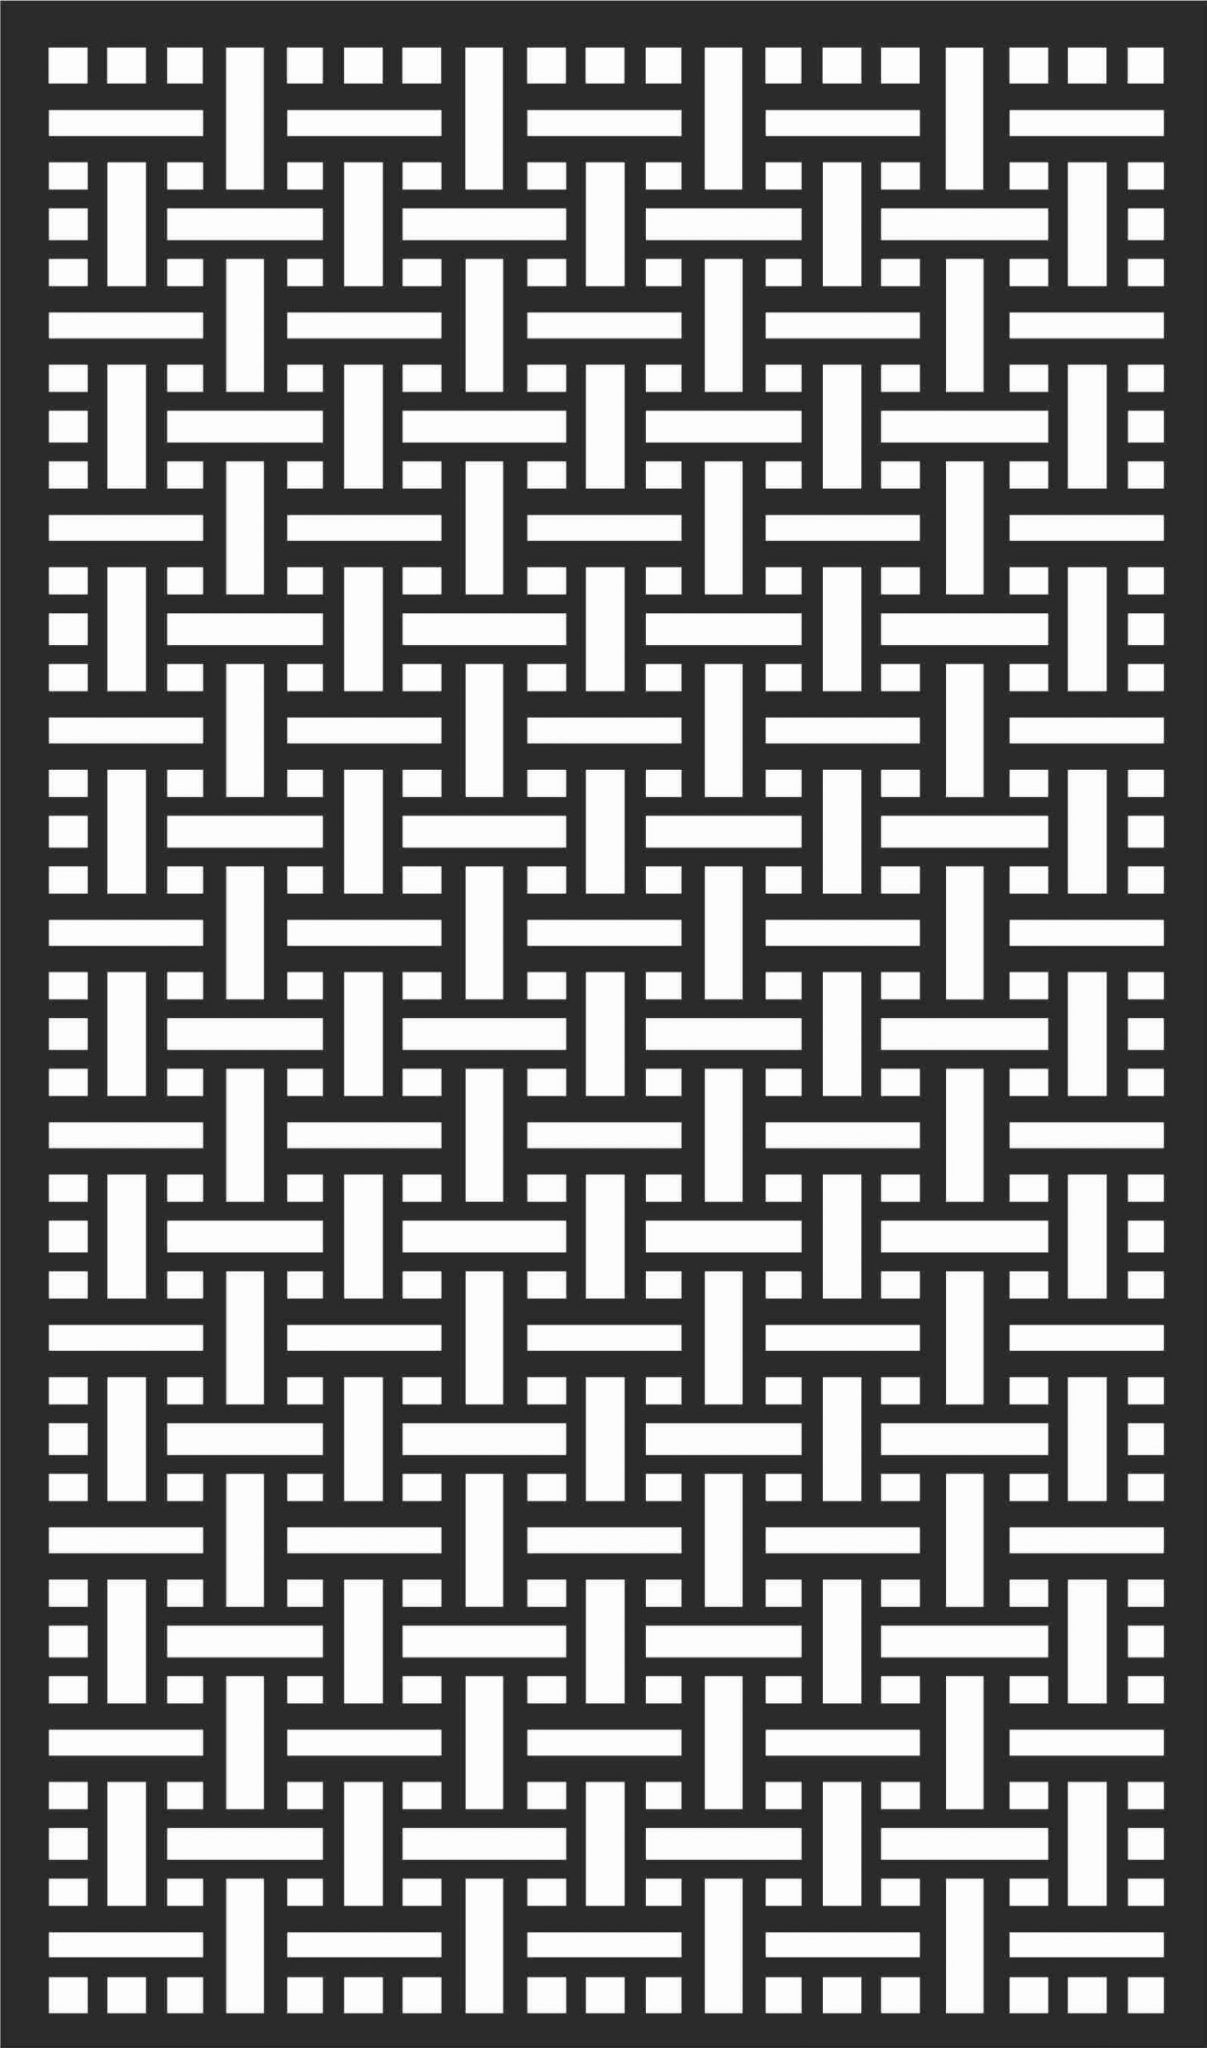 Decorative Screen Patterns For Laser Cutting 100 Free DXF File